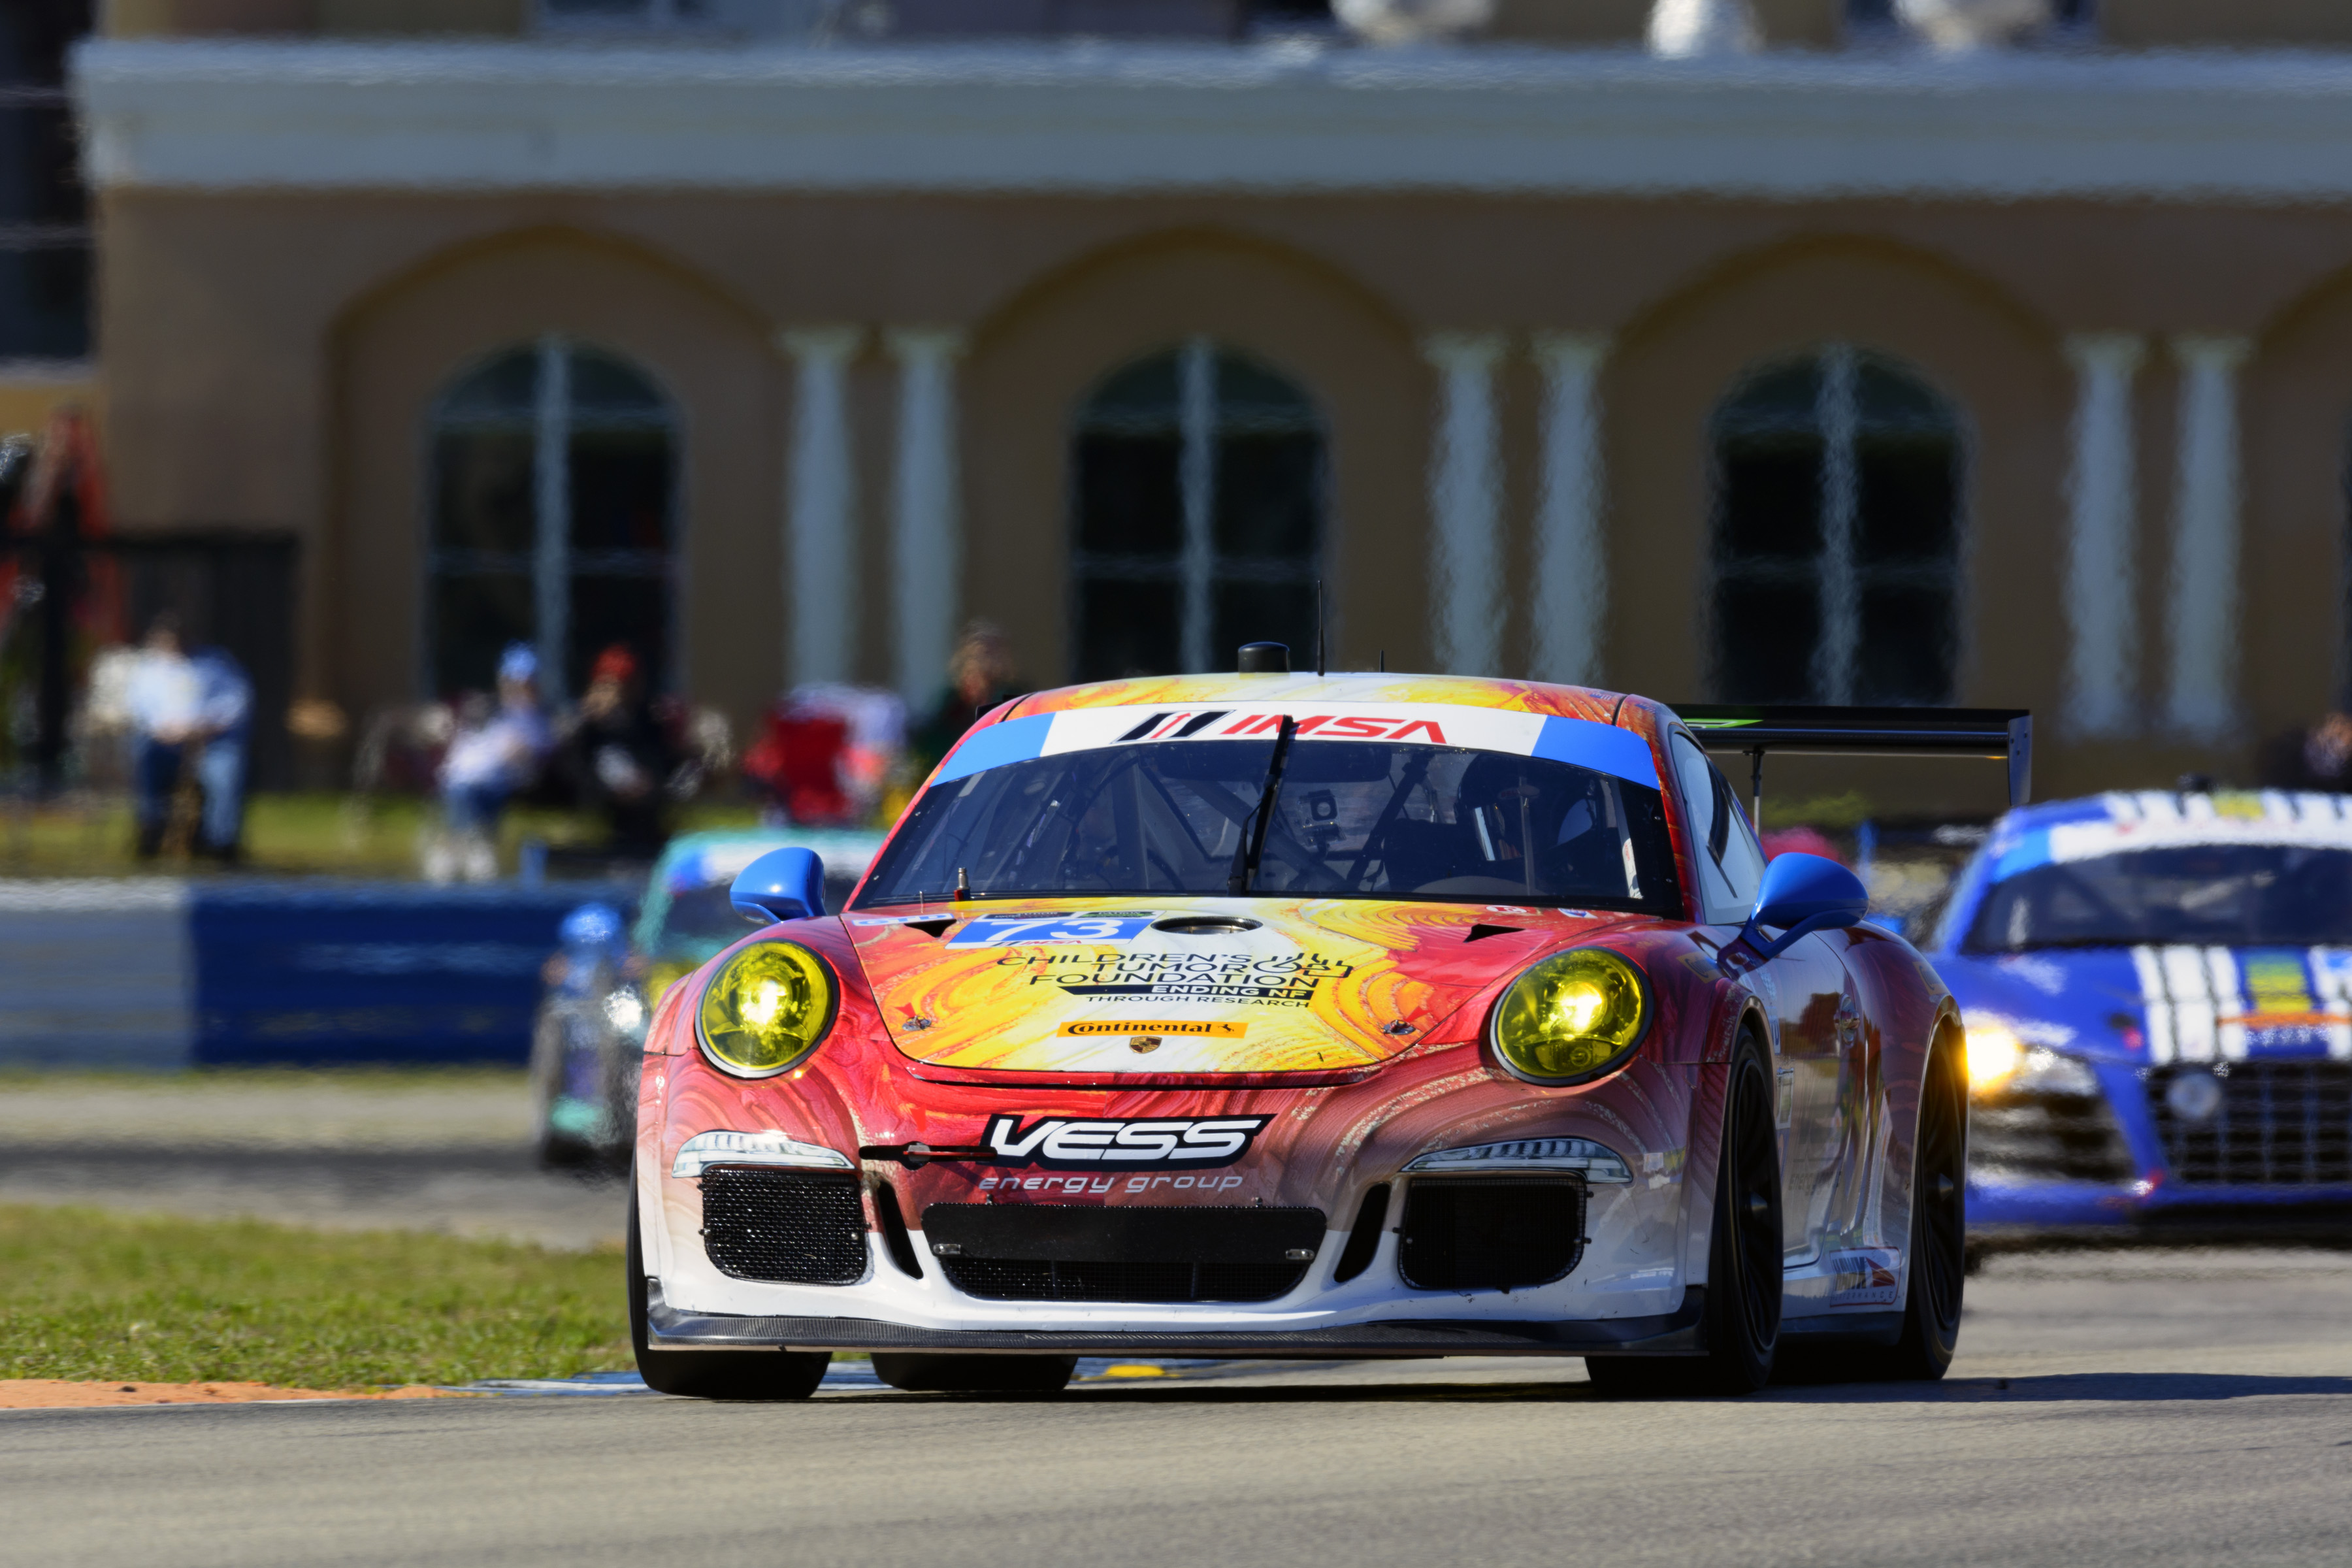 porsche s pictures and results from the mobil 1 12 hours of sebring